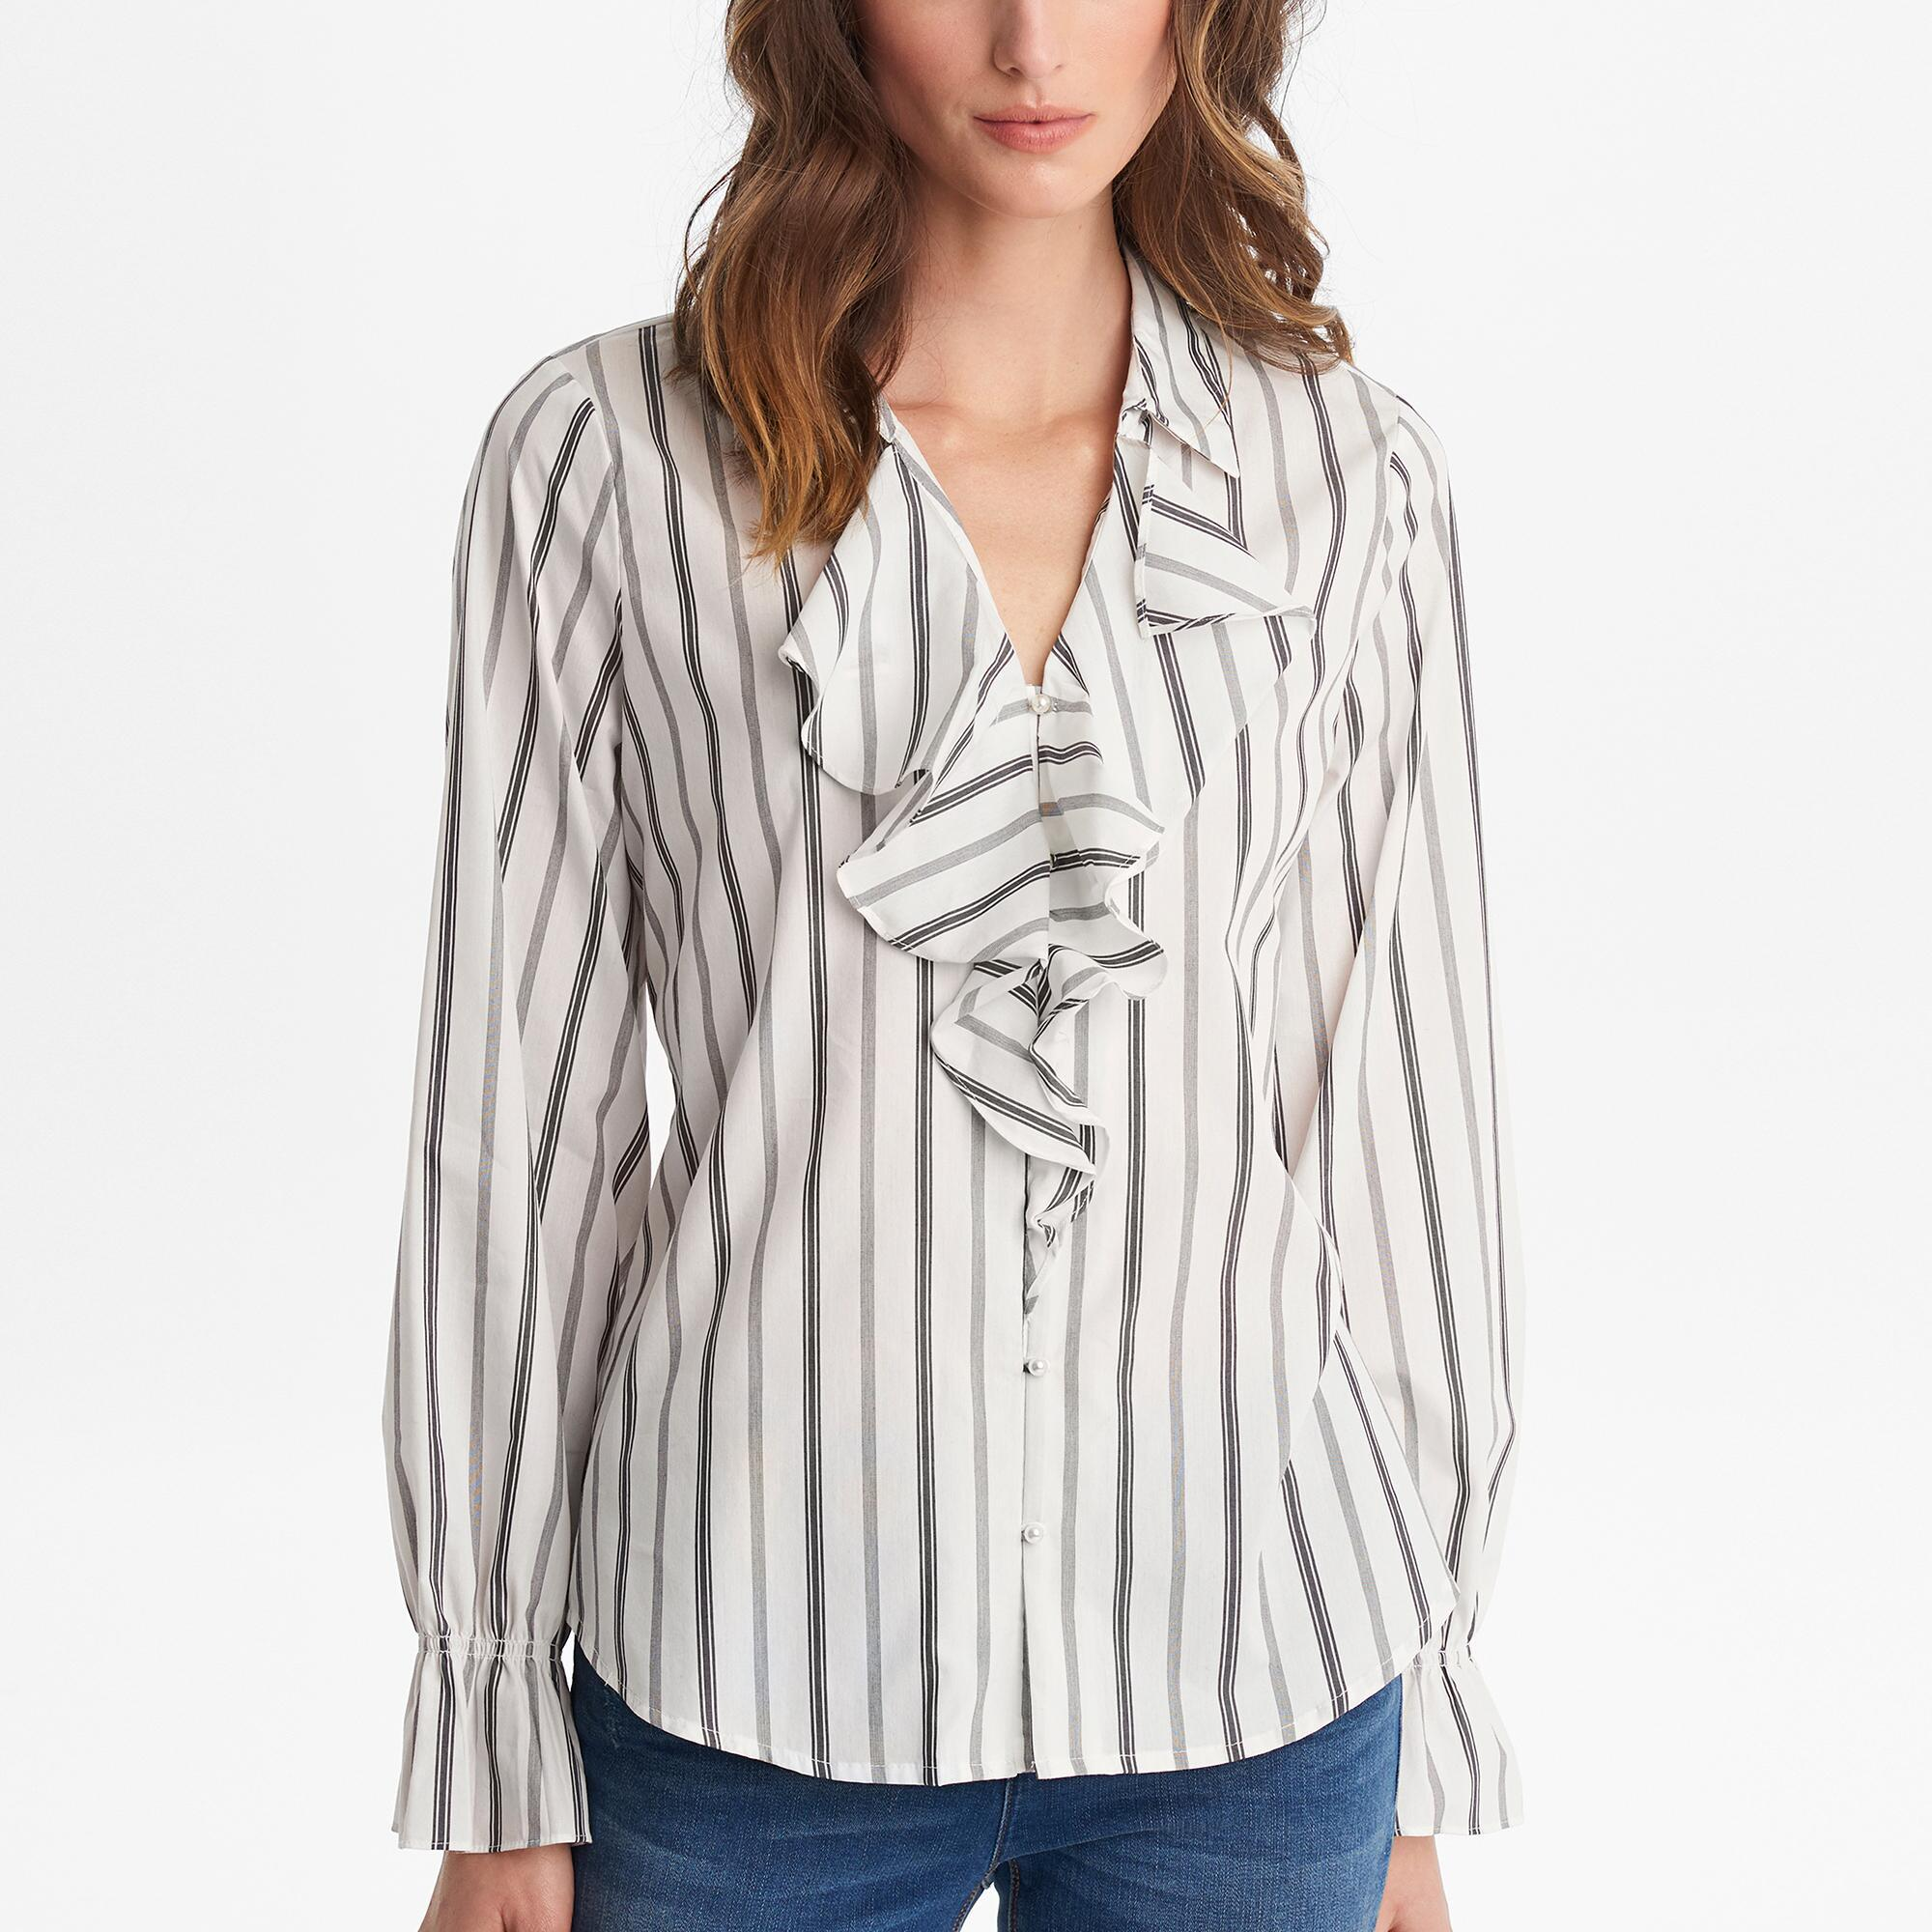 c2b83e6a287102 Karl Lagerfeld - White Striped Ruffle Front Blouse Top - Lyst. View  fullscreen